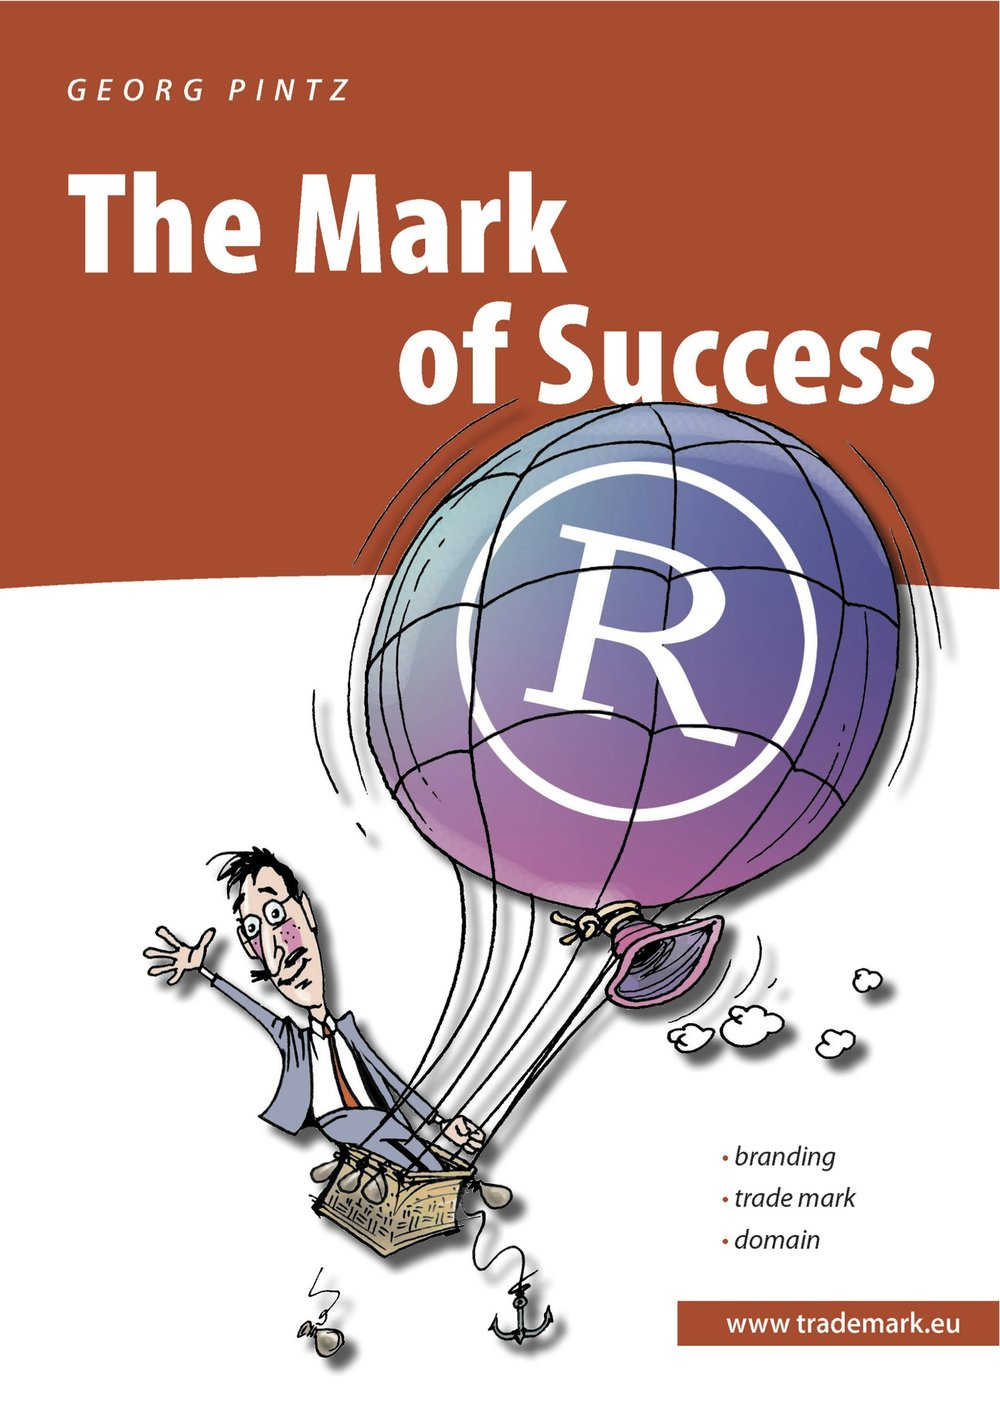 The book about trademarks in English, published in 2010.